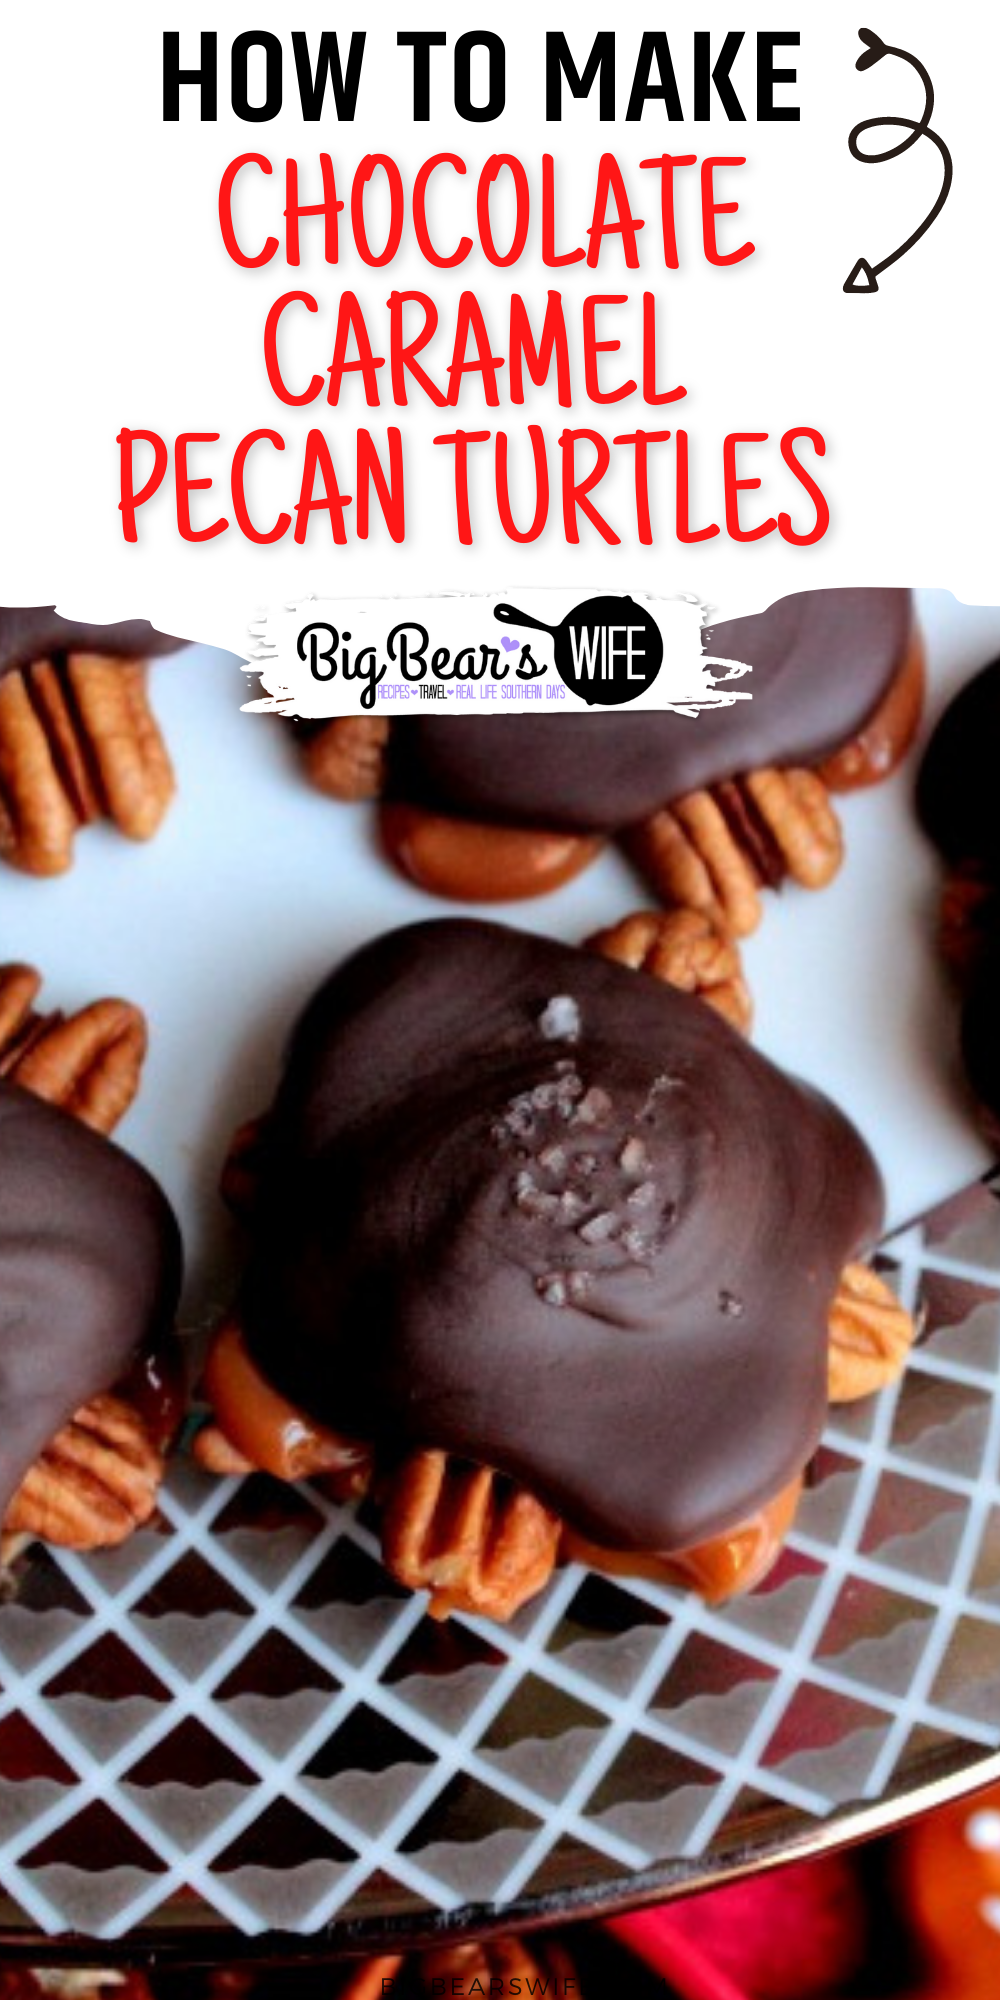 Ready to make Homemade Chocolate and Caramel Pecan Turtles for Christmas? This recipe for Turtles is super easy and they are always a hit for Christmas gifts! Perfect as a Homemade Christmas Gift treat! via @bigbearswife